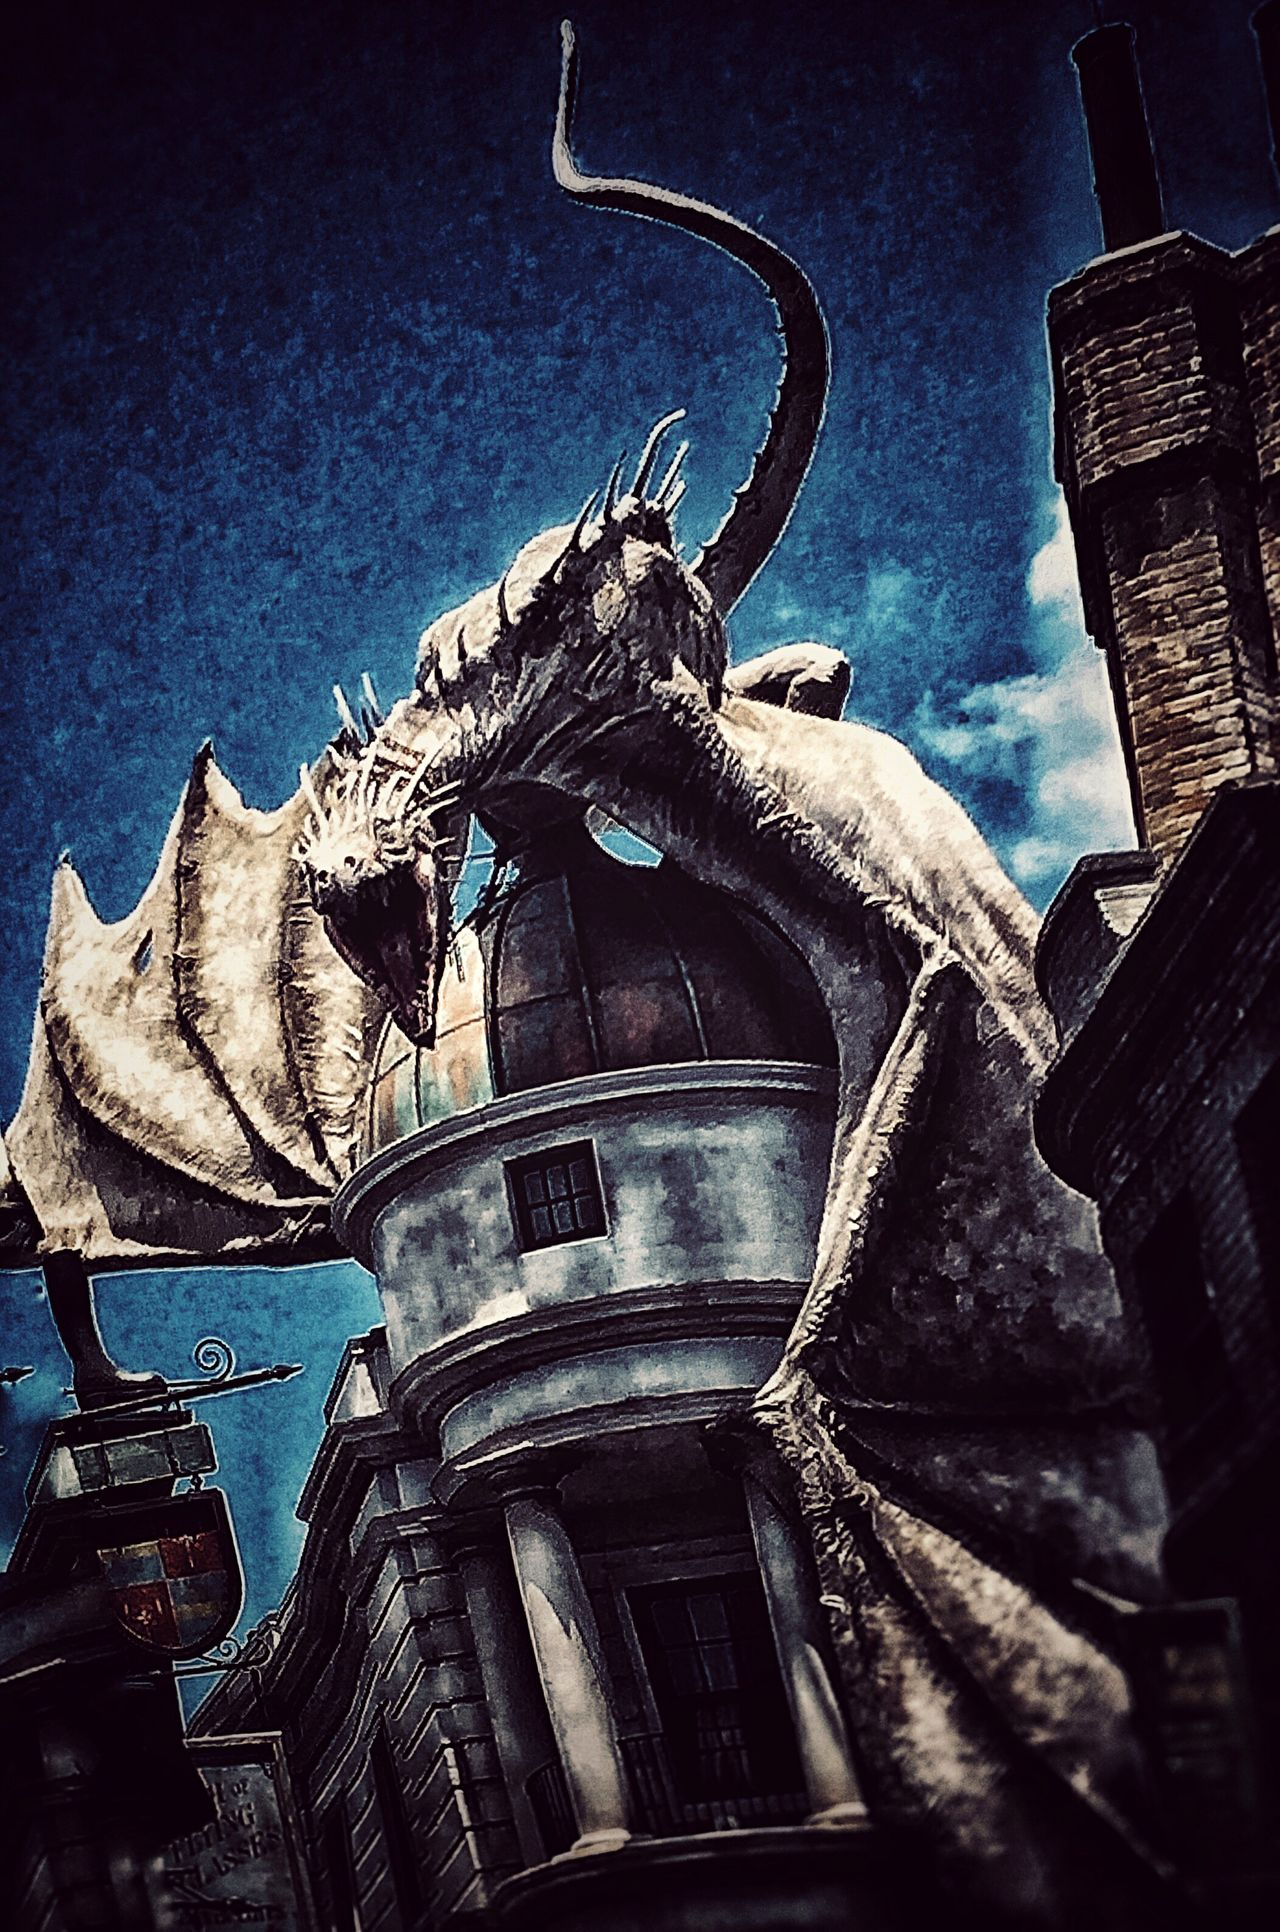 Universal Studios  Harrypotter Gringotts Dragon Diagon Alley My Unique Style From My Point Of View Edit Blew My Mind Could Feel The Fire Breathing Dragons Breath On My Face Hundreds Of Yards Away And 8 Stories Down! Loved My Visit Wingardium_Laviosa